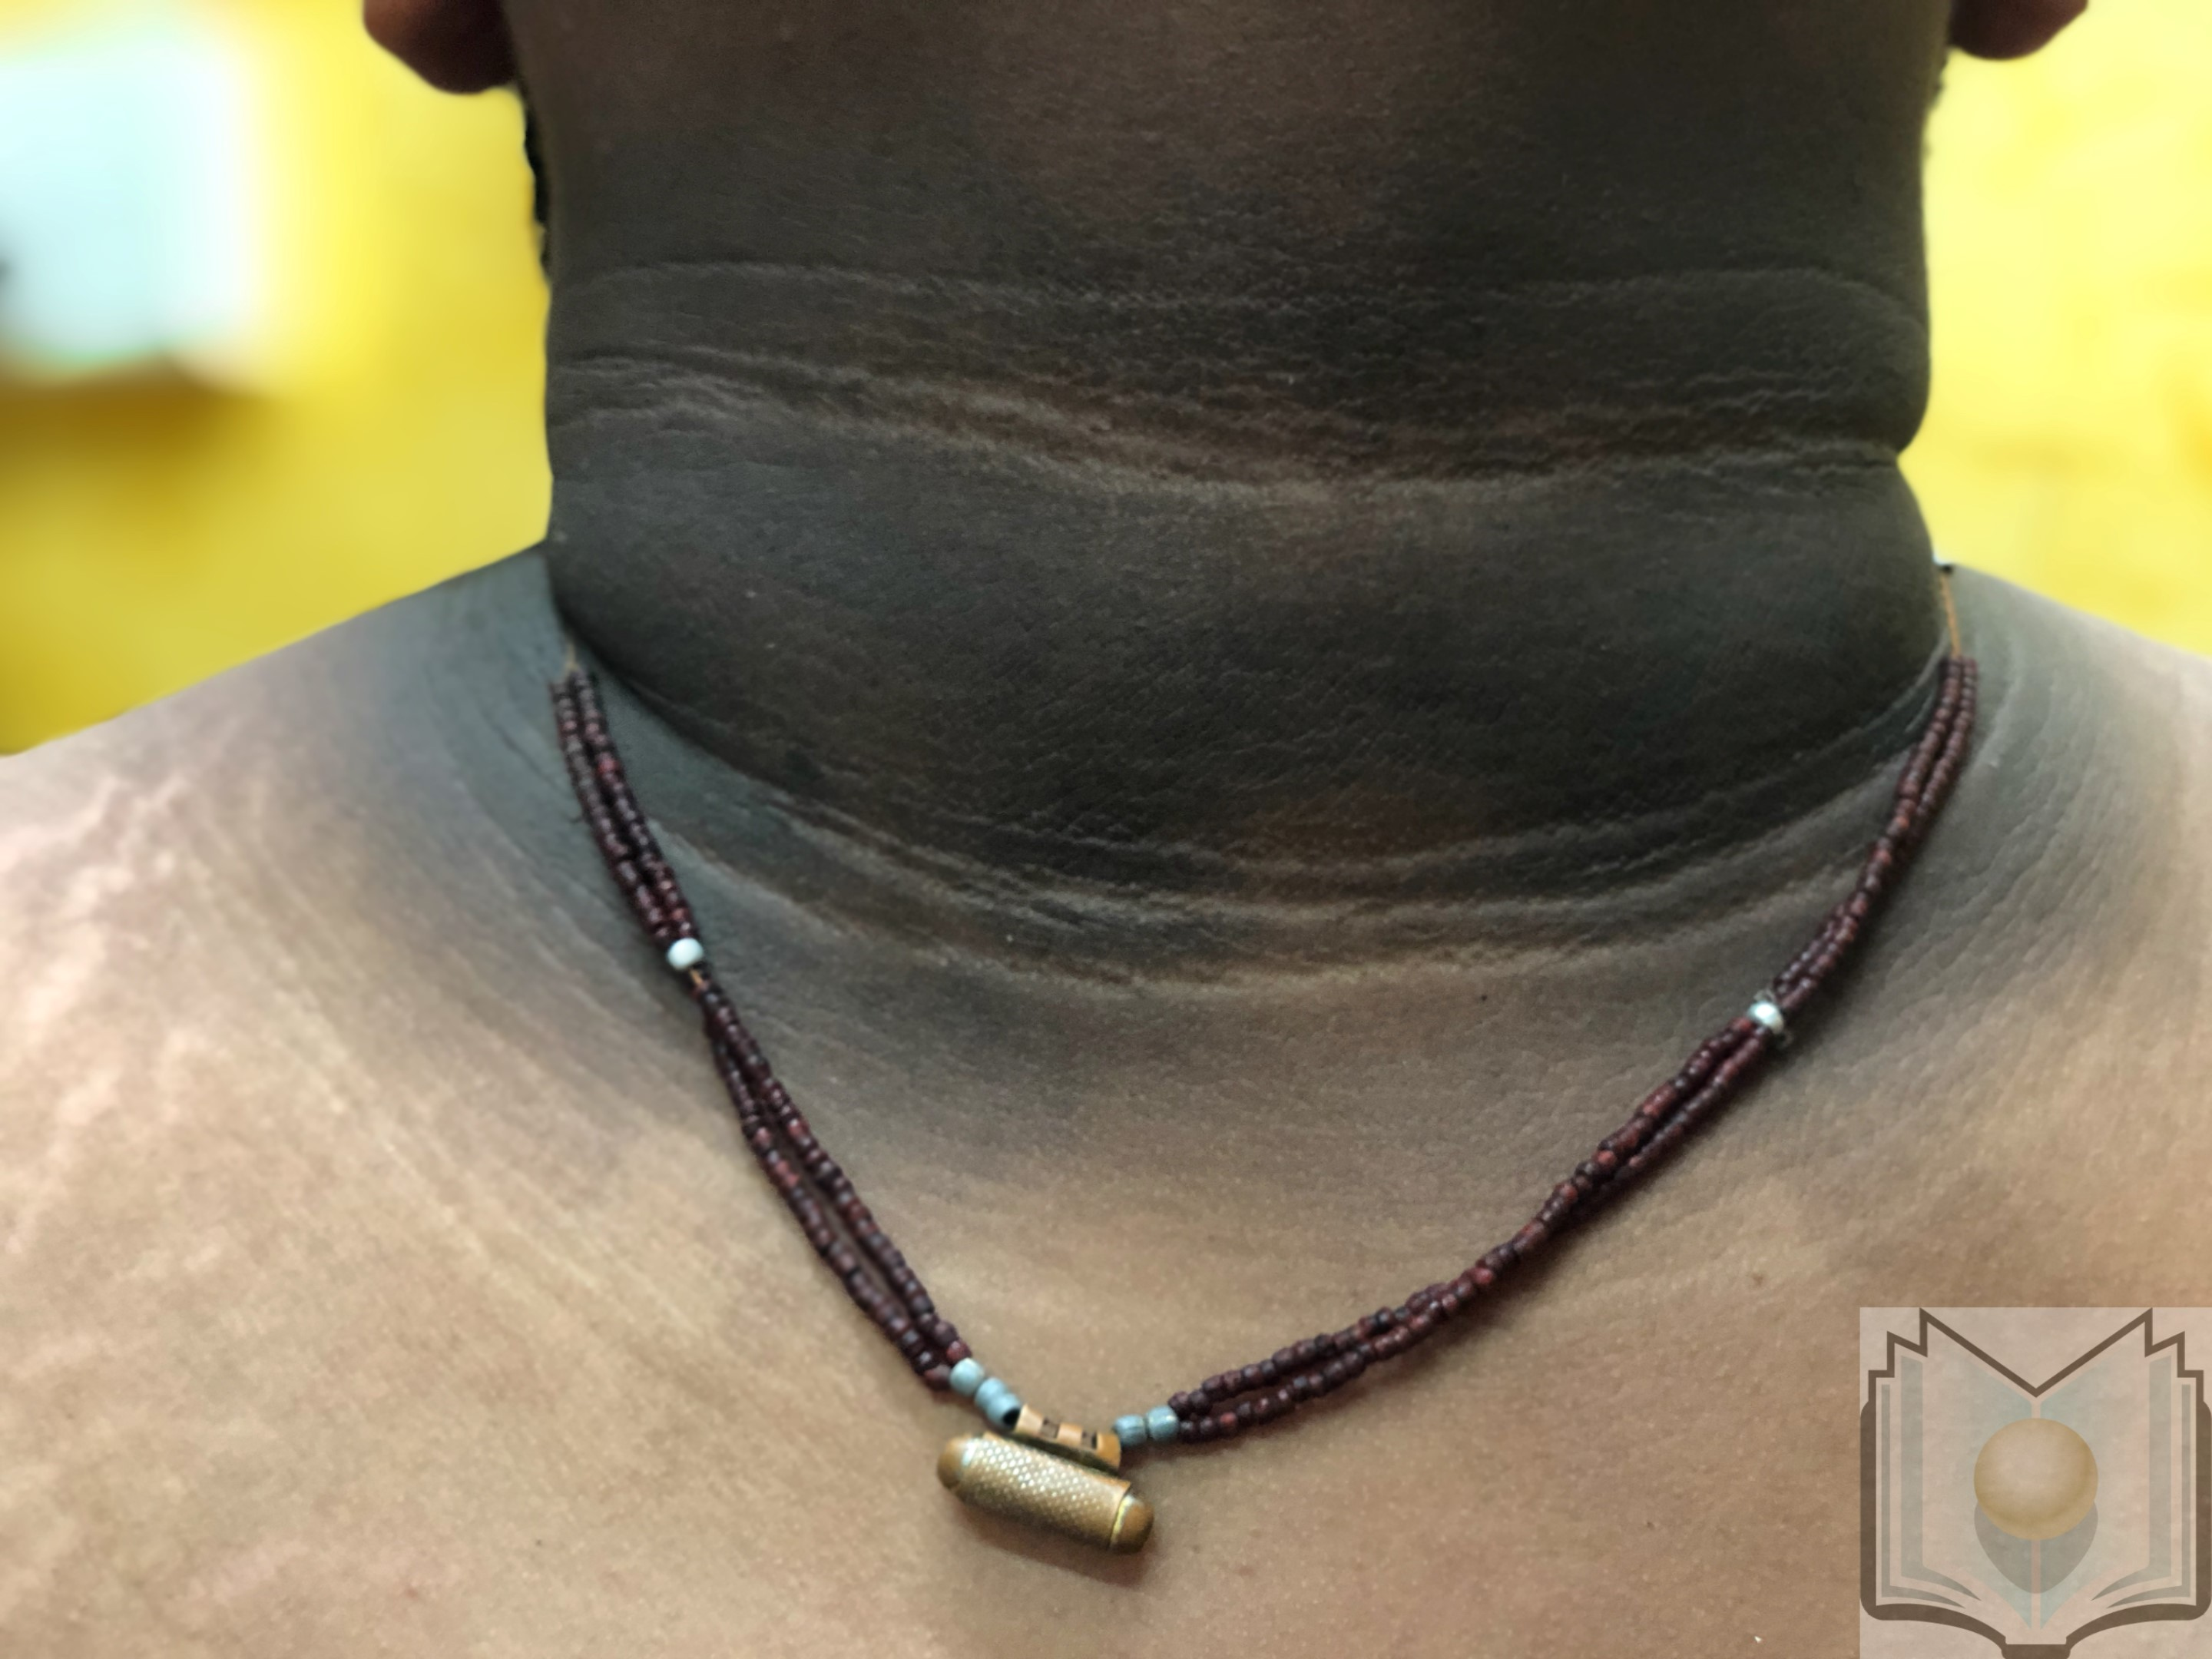 Acanthosis nigricans SV1 A